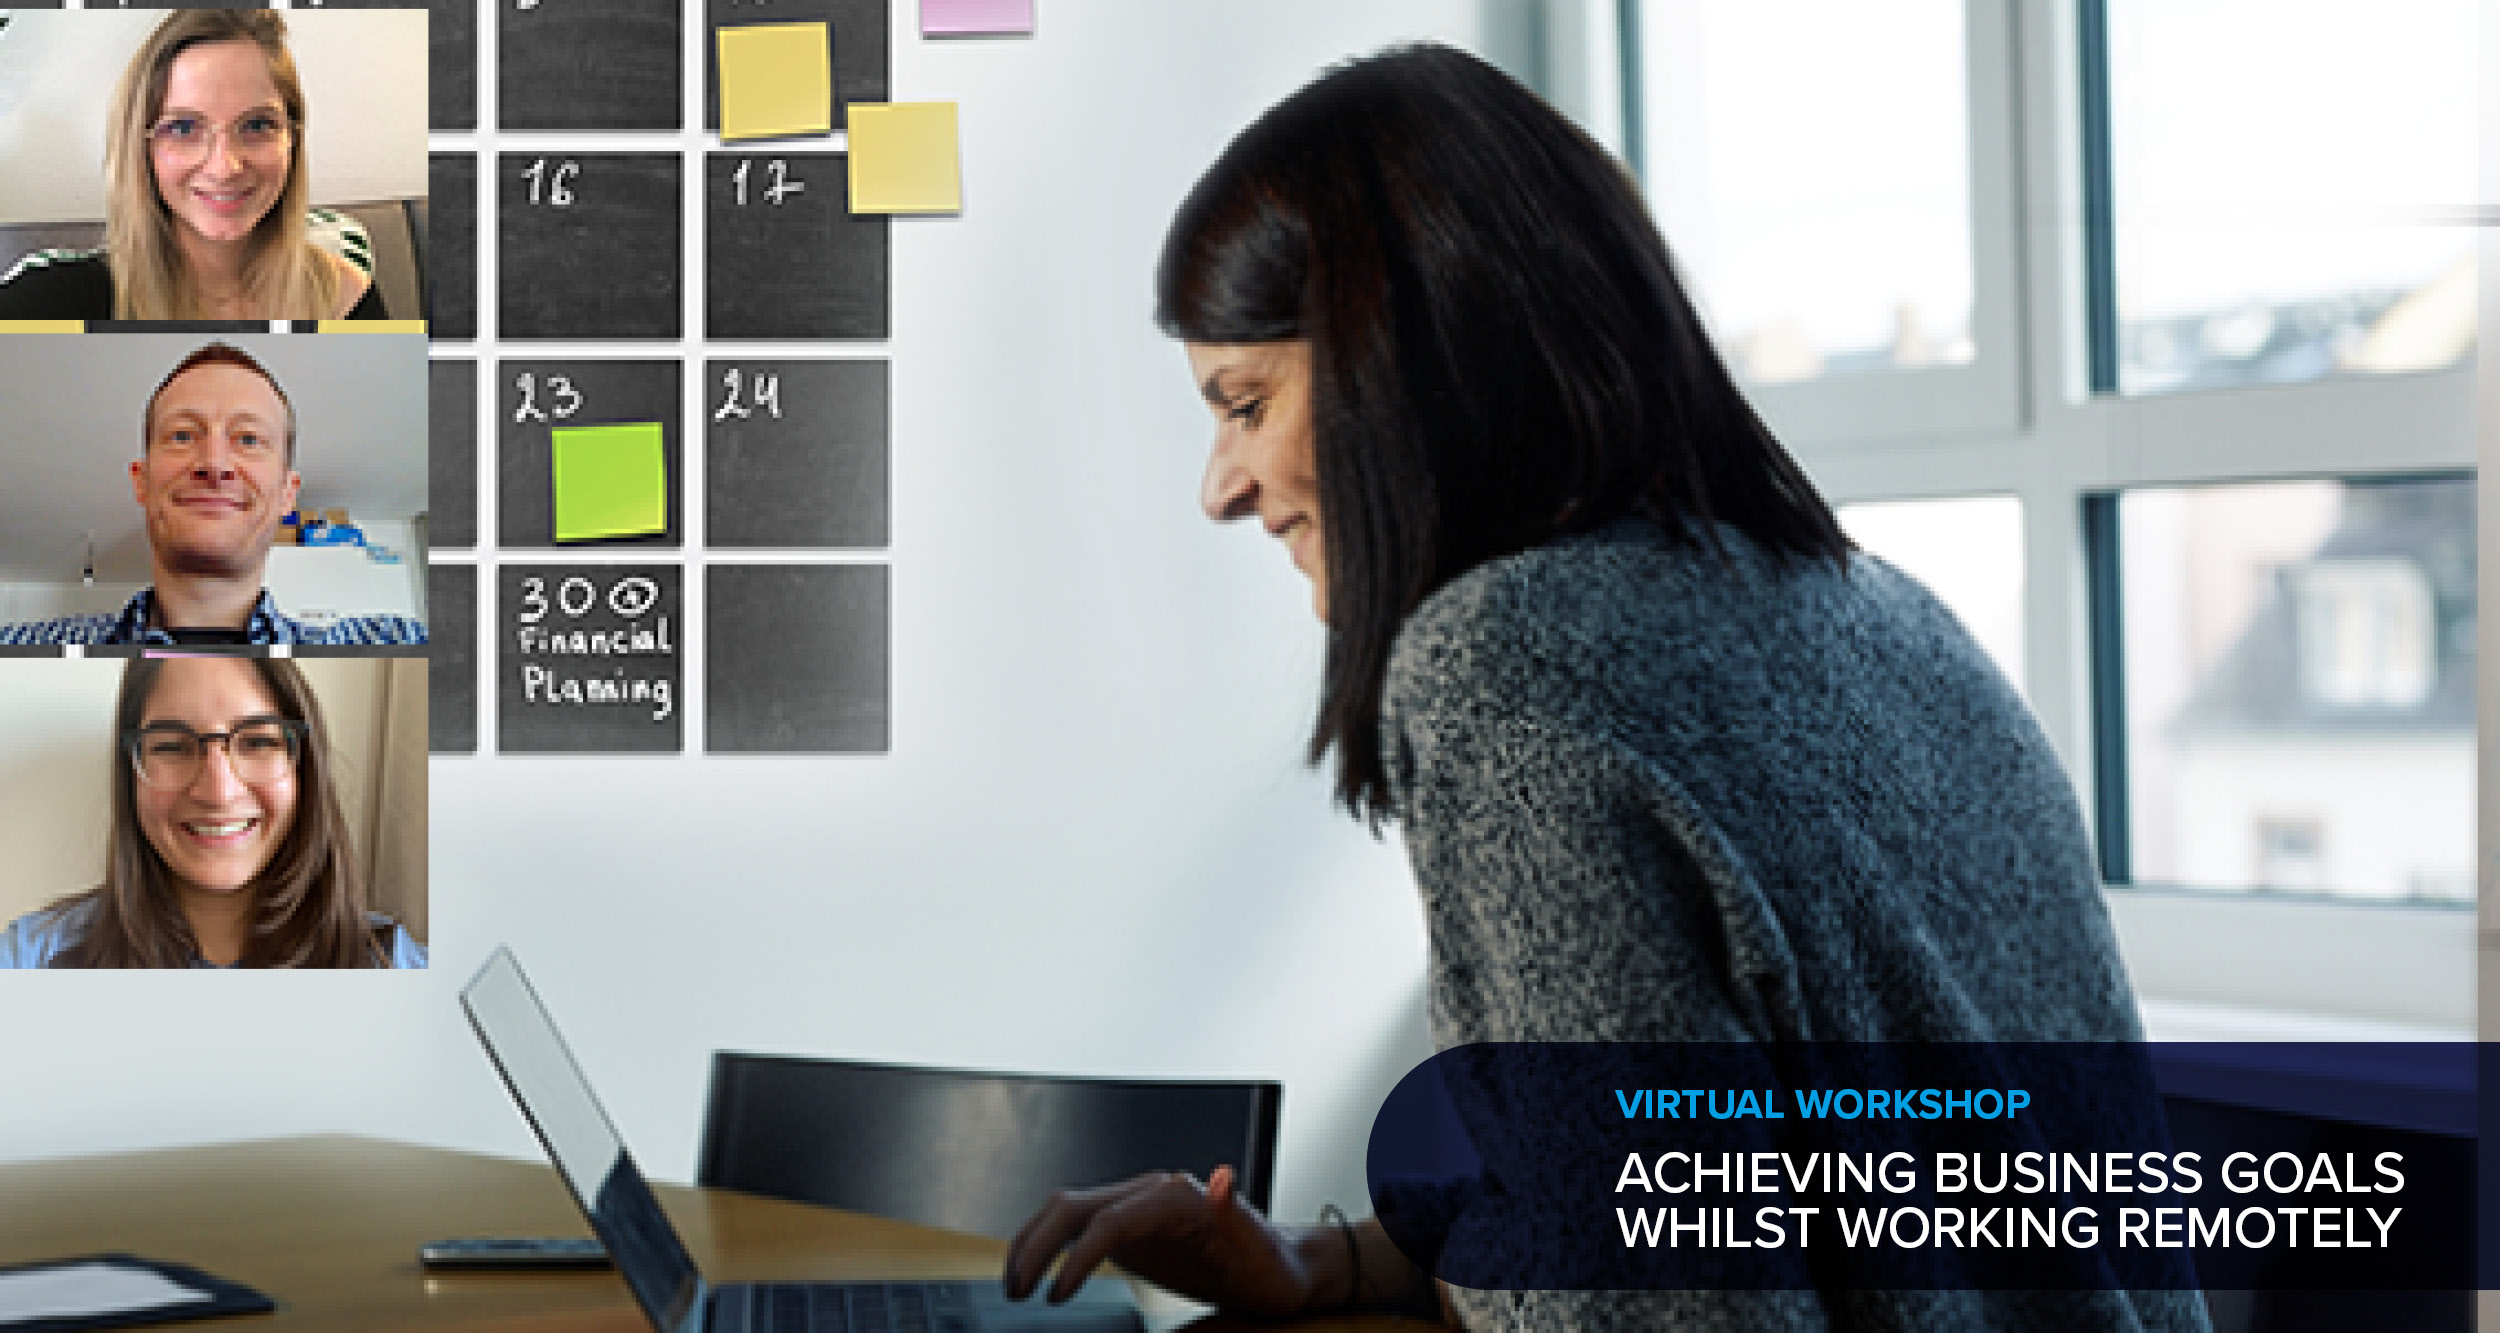 Virtual workshop: Achieving business goals whilst working remotely